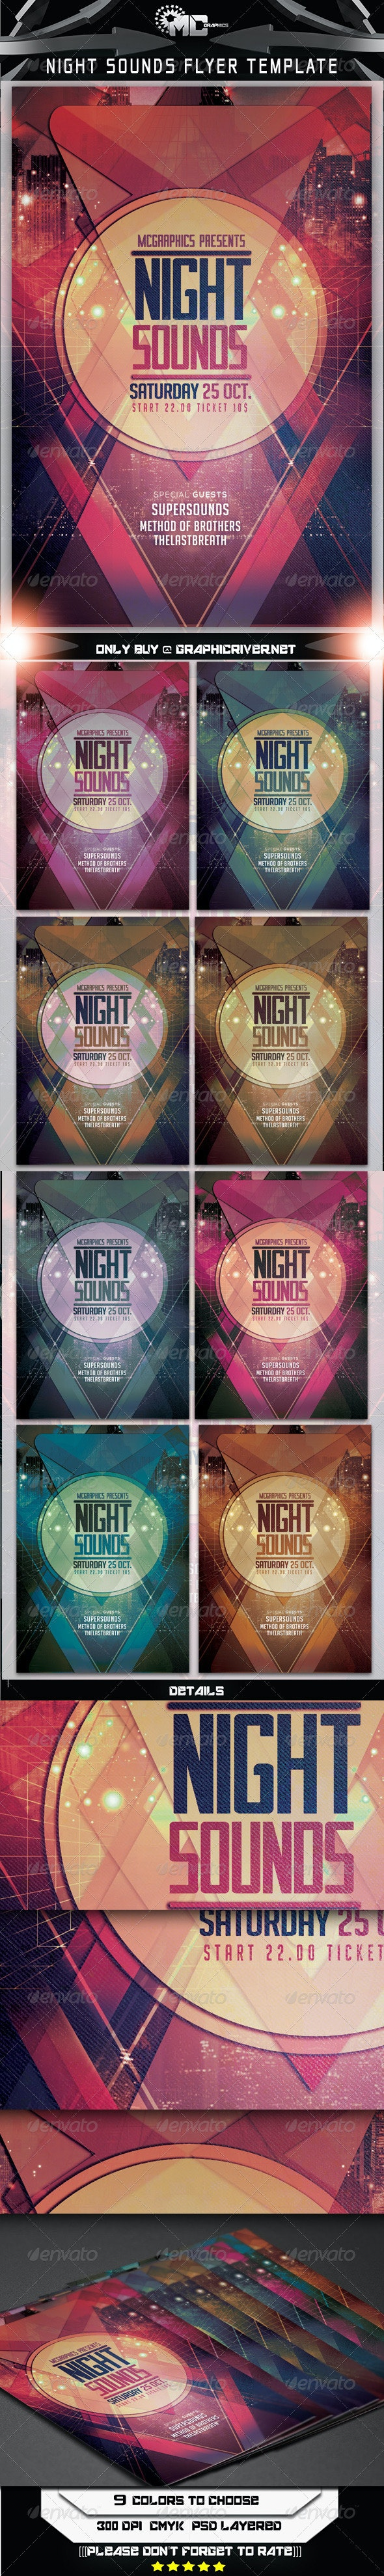 Night Sounds Flyer Template - Flyers Print Templates